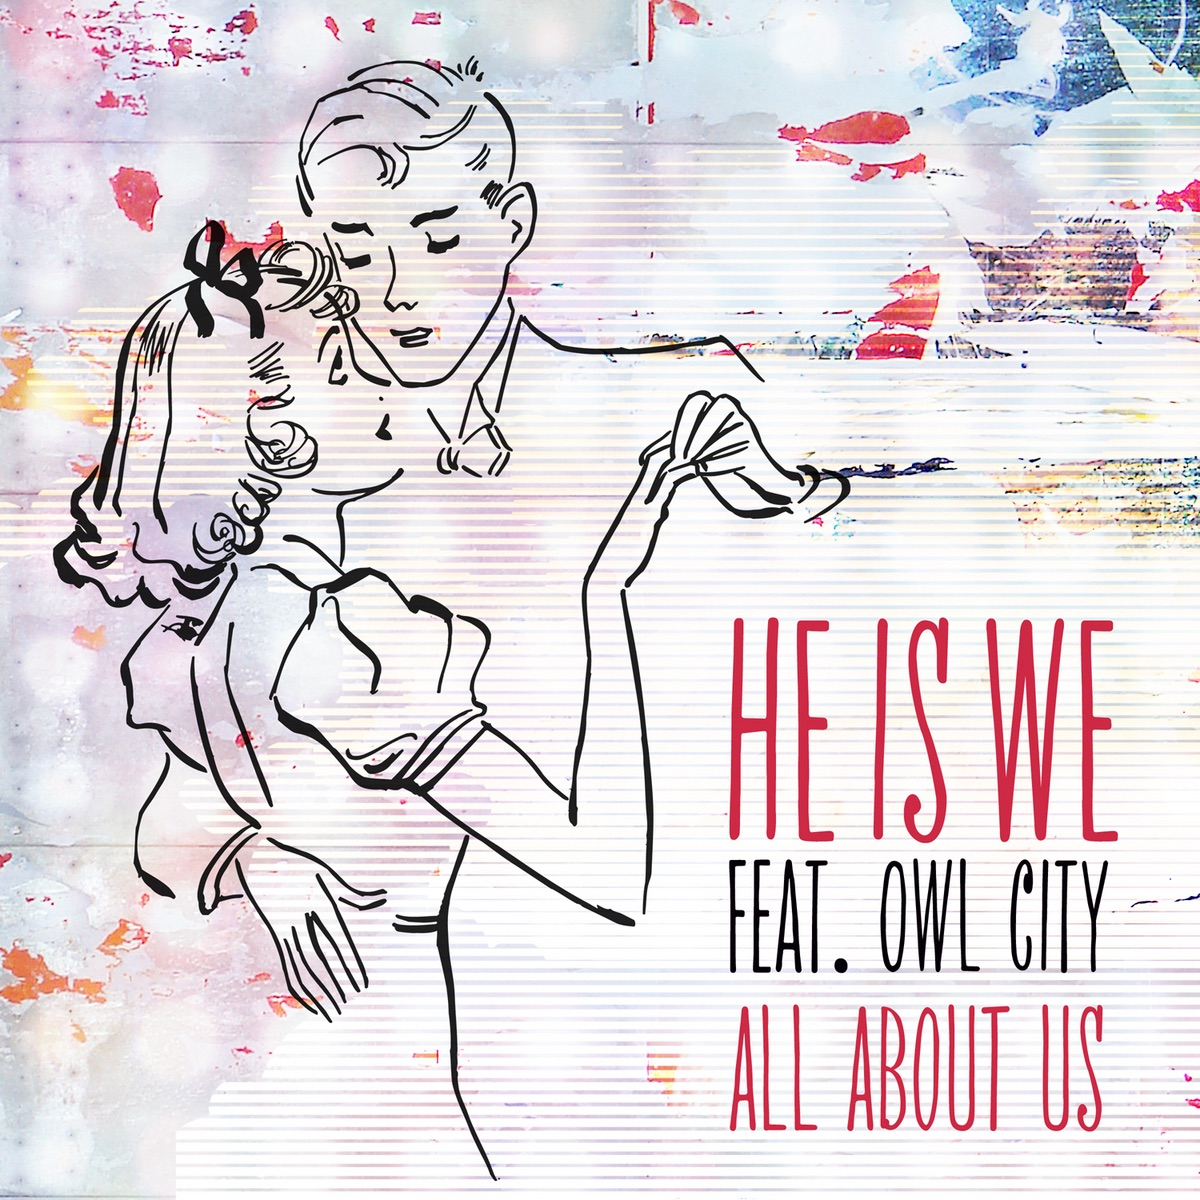 All About Us (feat. Owl City)